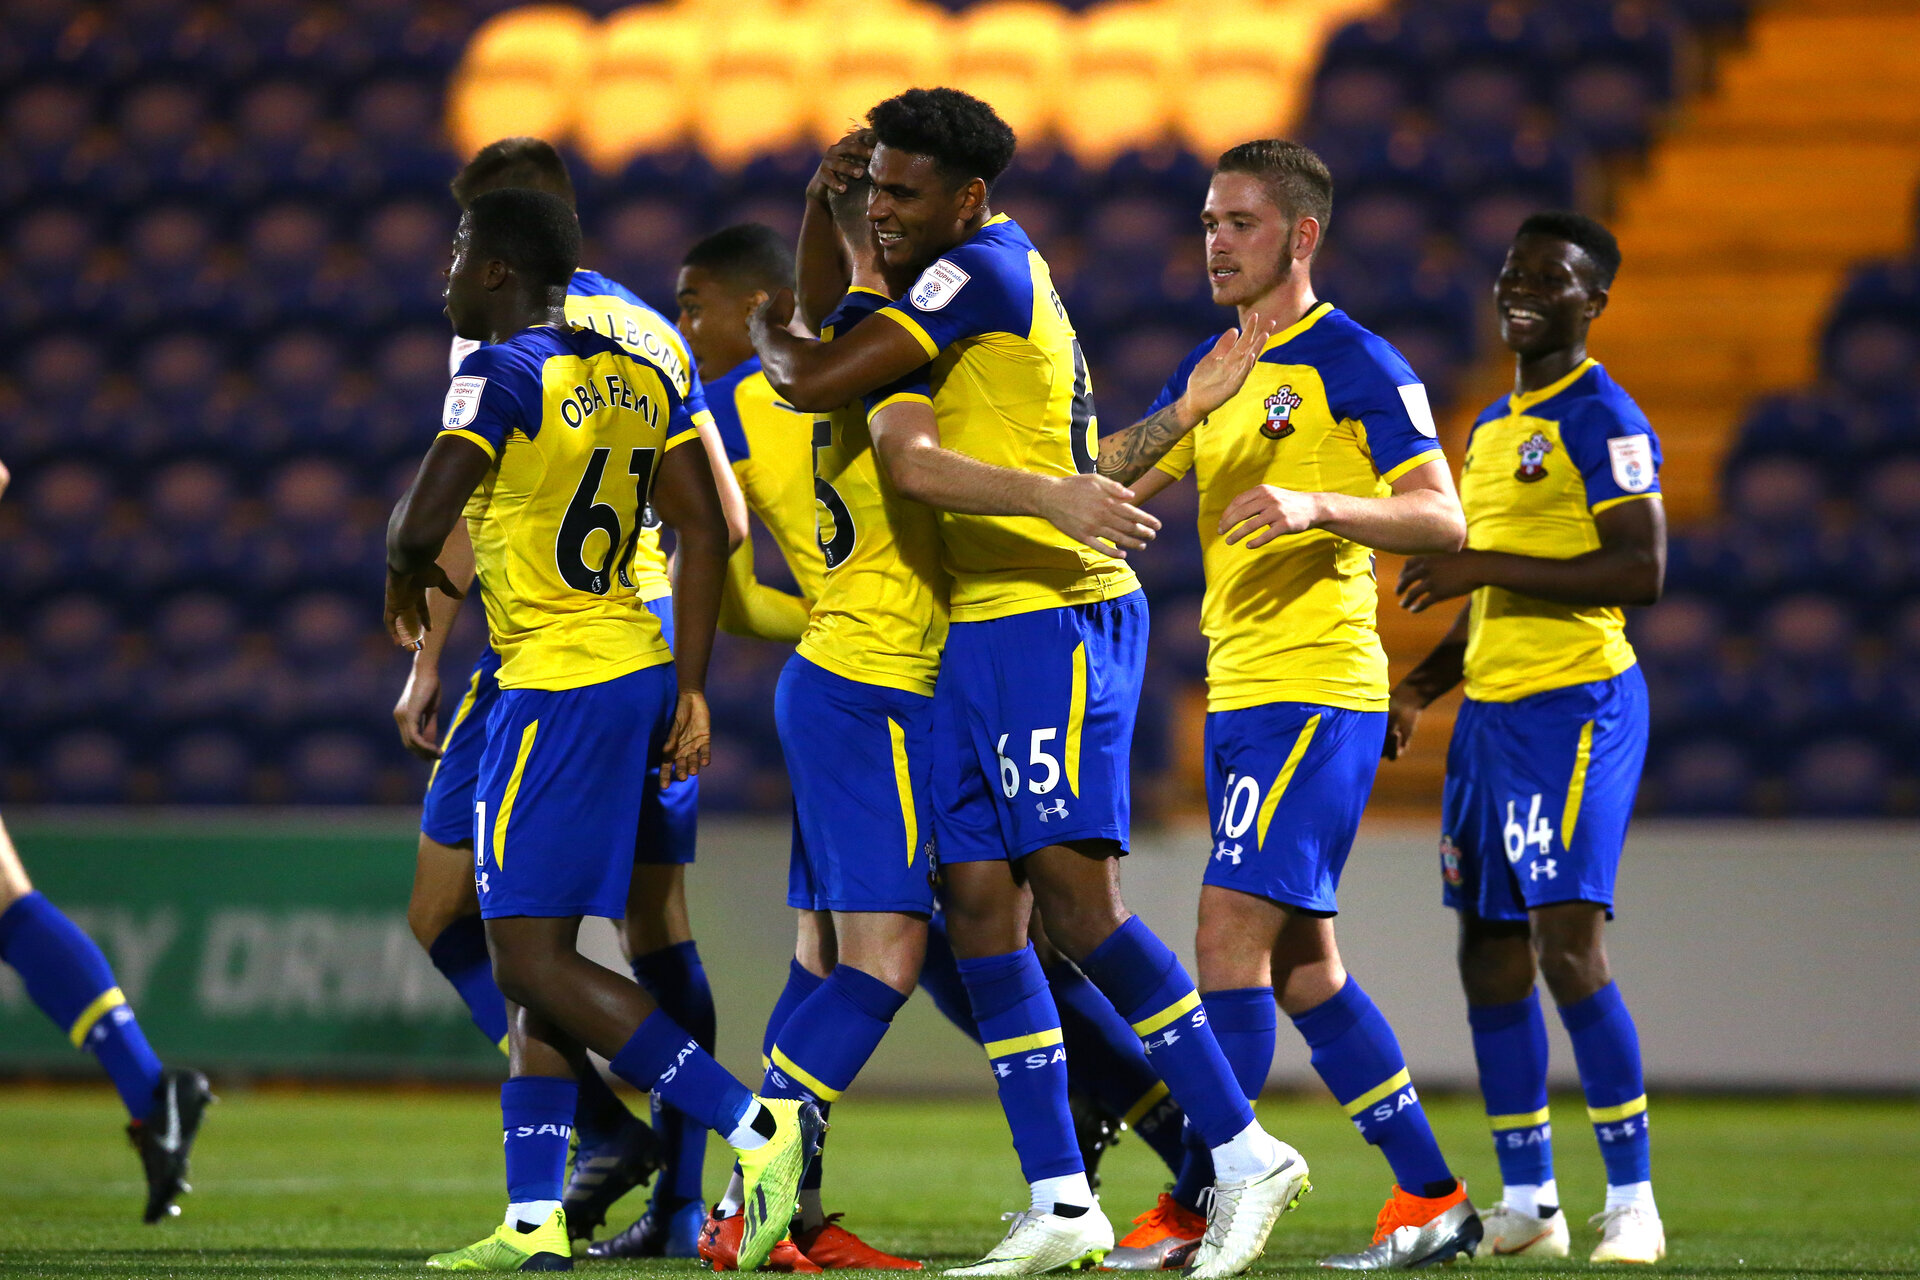 COLCHESTER, ENGLAND - SEPTEMBER 04: Marcus Barnes scores for Southampton FC  (middle) during the Check a Trade Cup match between Colchester United vs Southampton FC at Jobserve Community Stadium on September 04, 2018 in Colchester, England. (Photo by James Bridle - Southampton FC/Southampton FC via Getty Images)